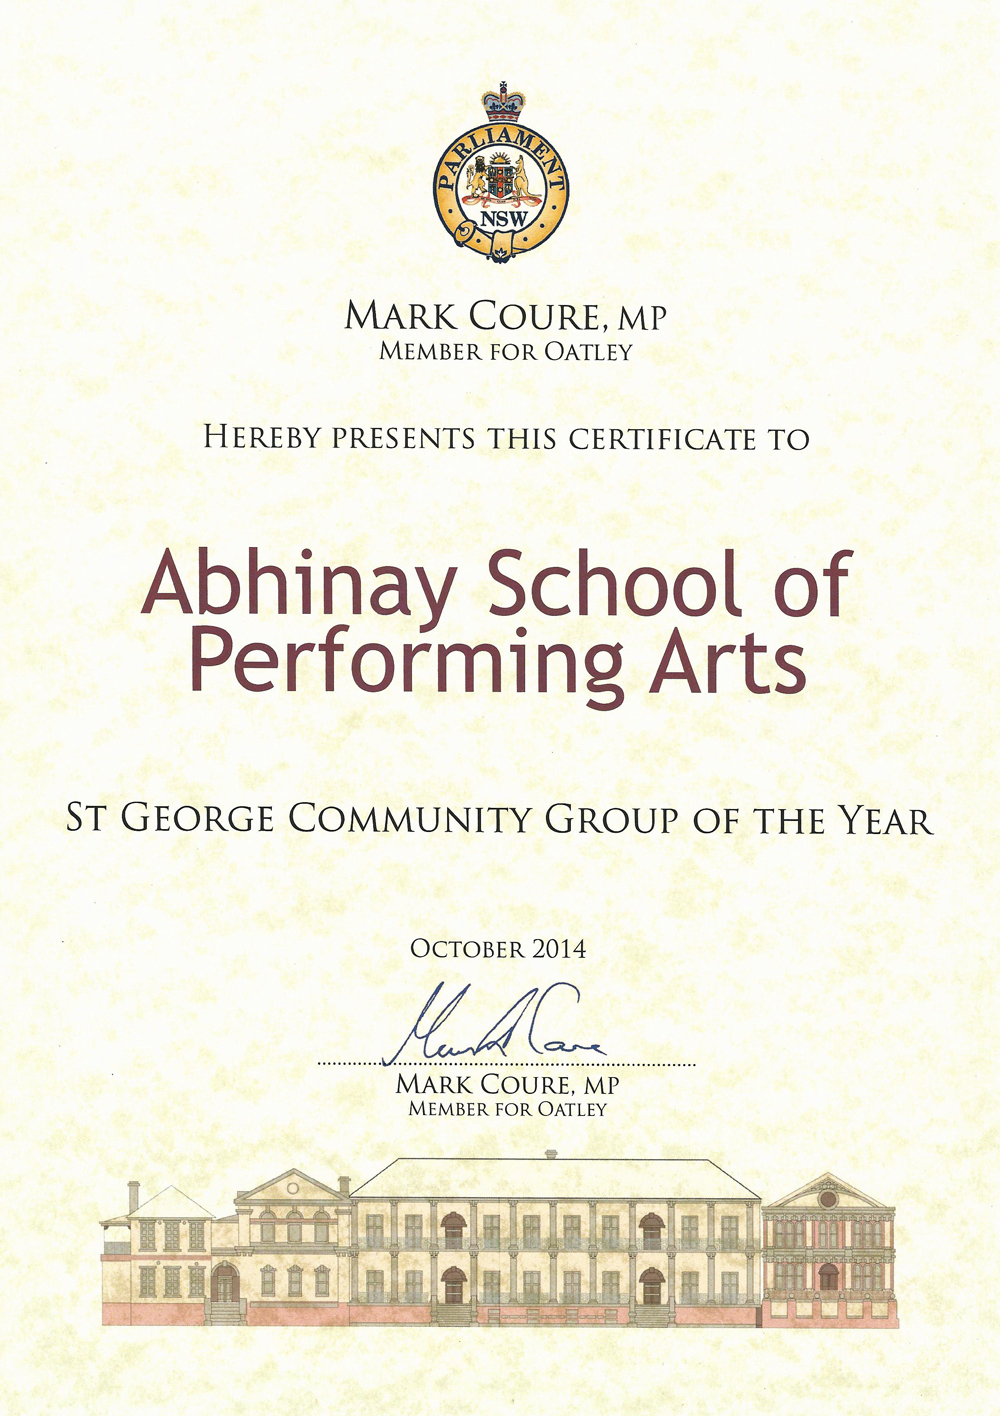 2.-St-George-Community-Group-of-the-year-2014